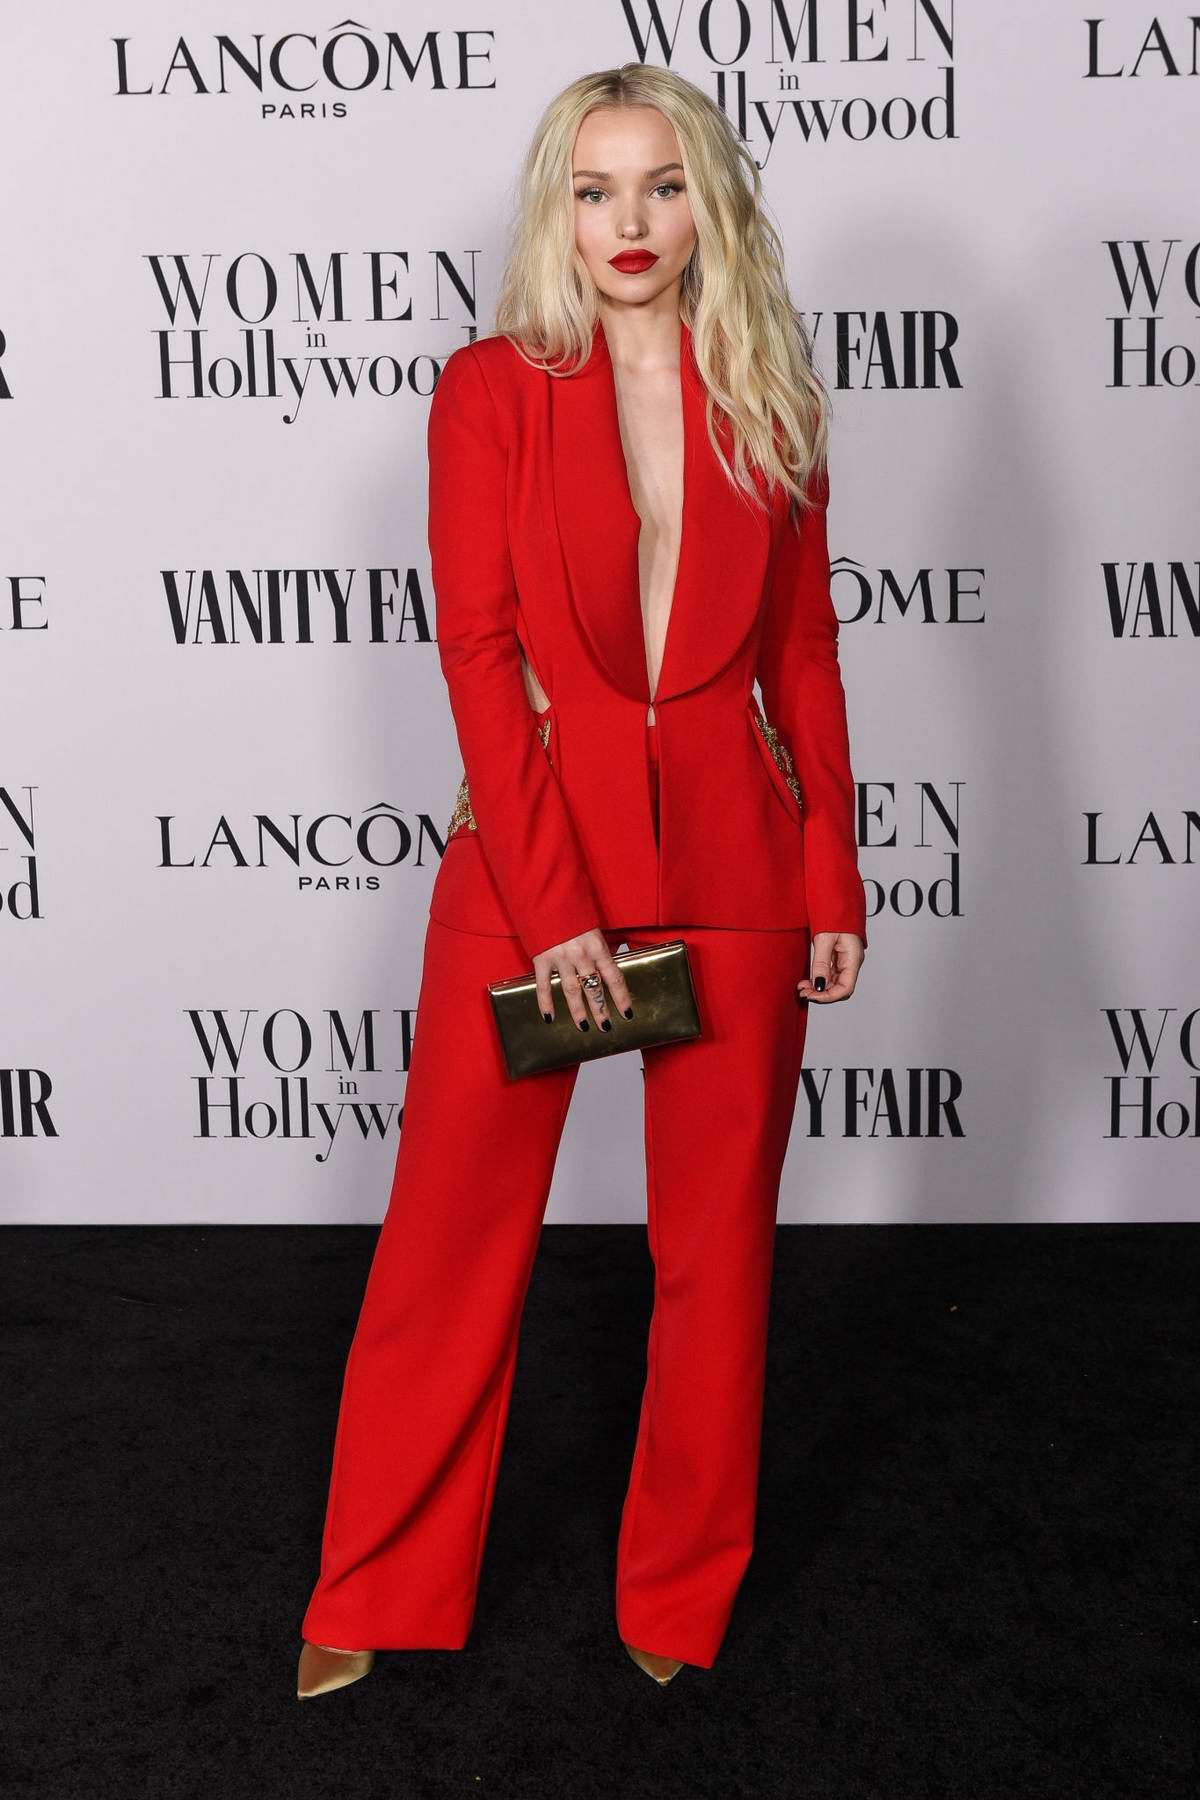 Dove Cameron attends the Vanity Fair and Lancome Women in Hollywood Celebration in West Hollywood, California